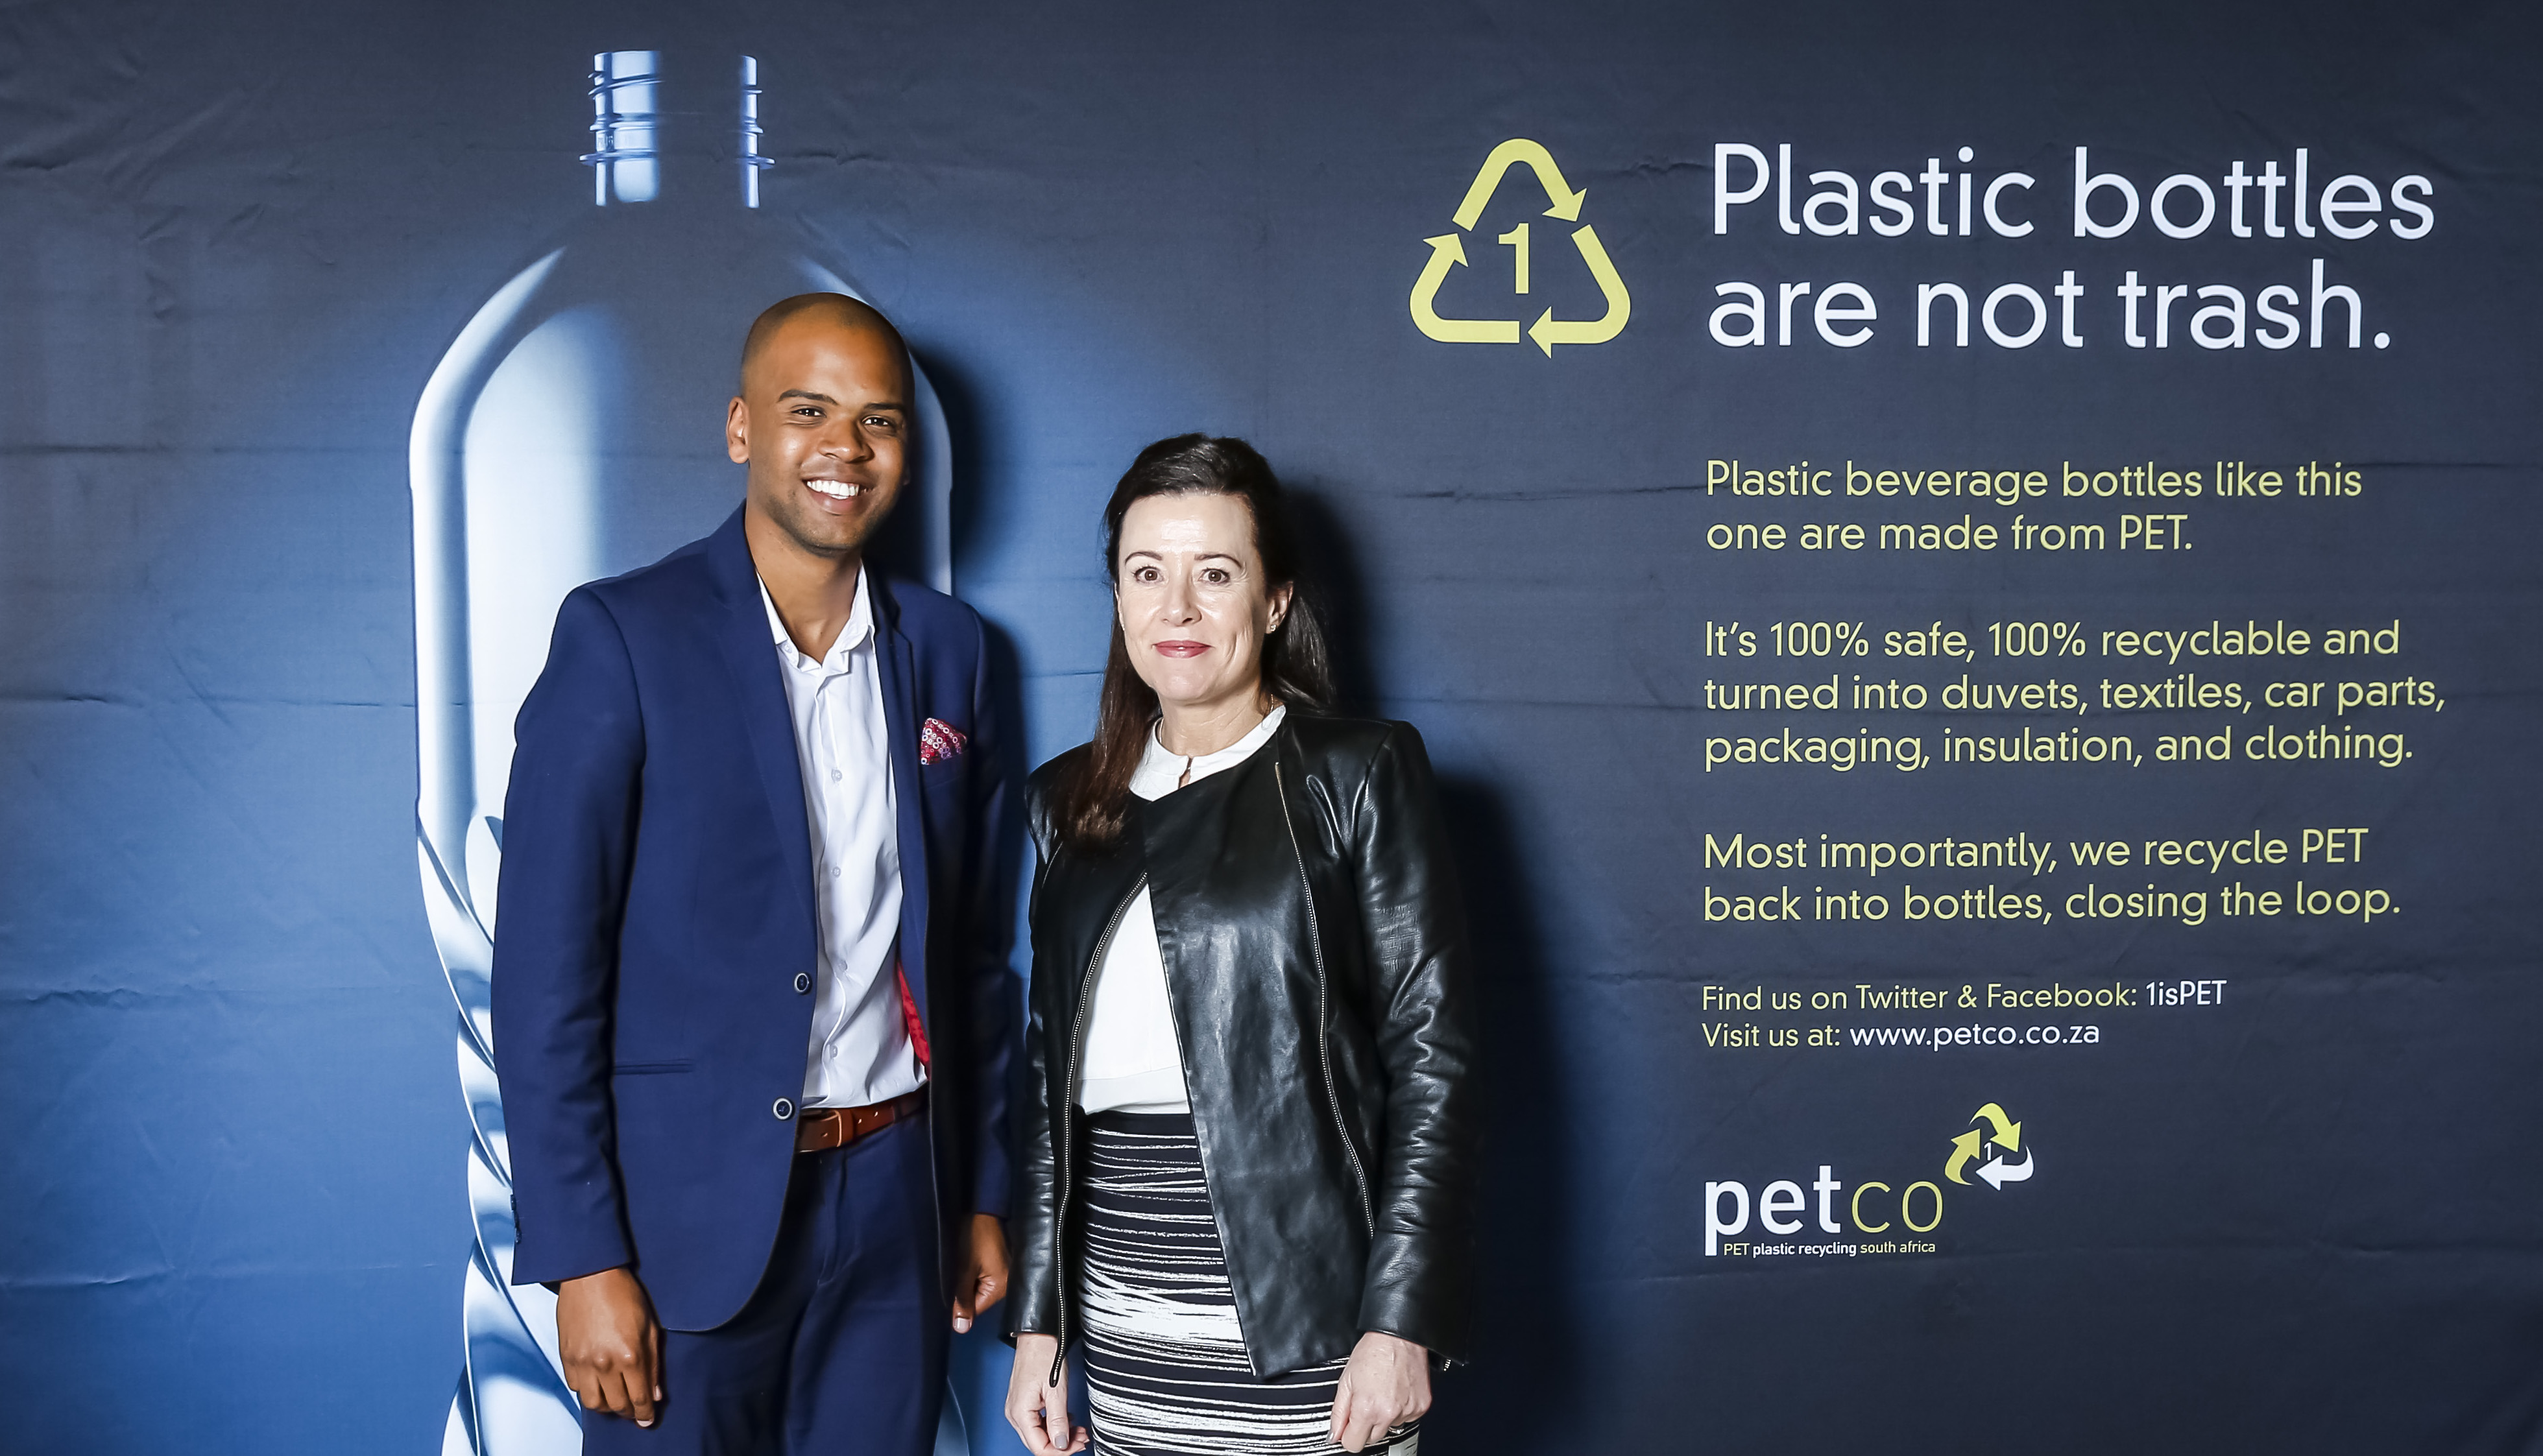 2016 PETCO Awards recognise extraordinary PET recycling achievements